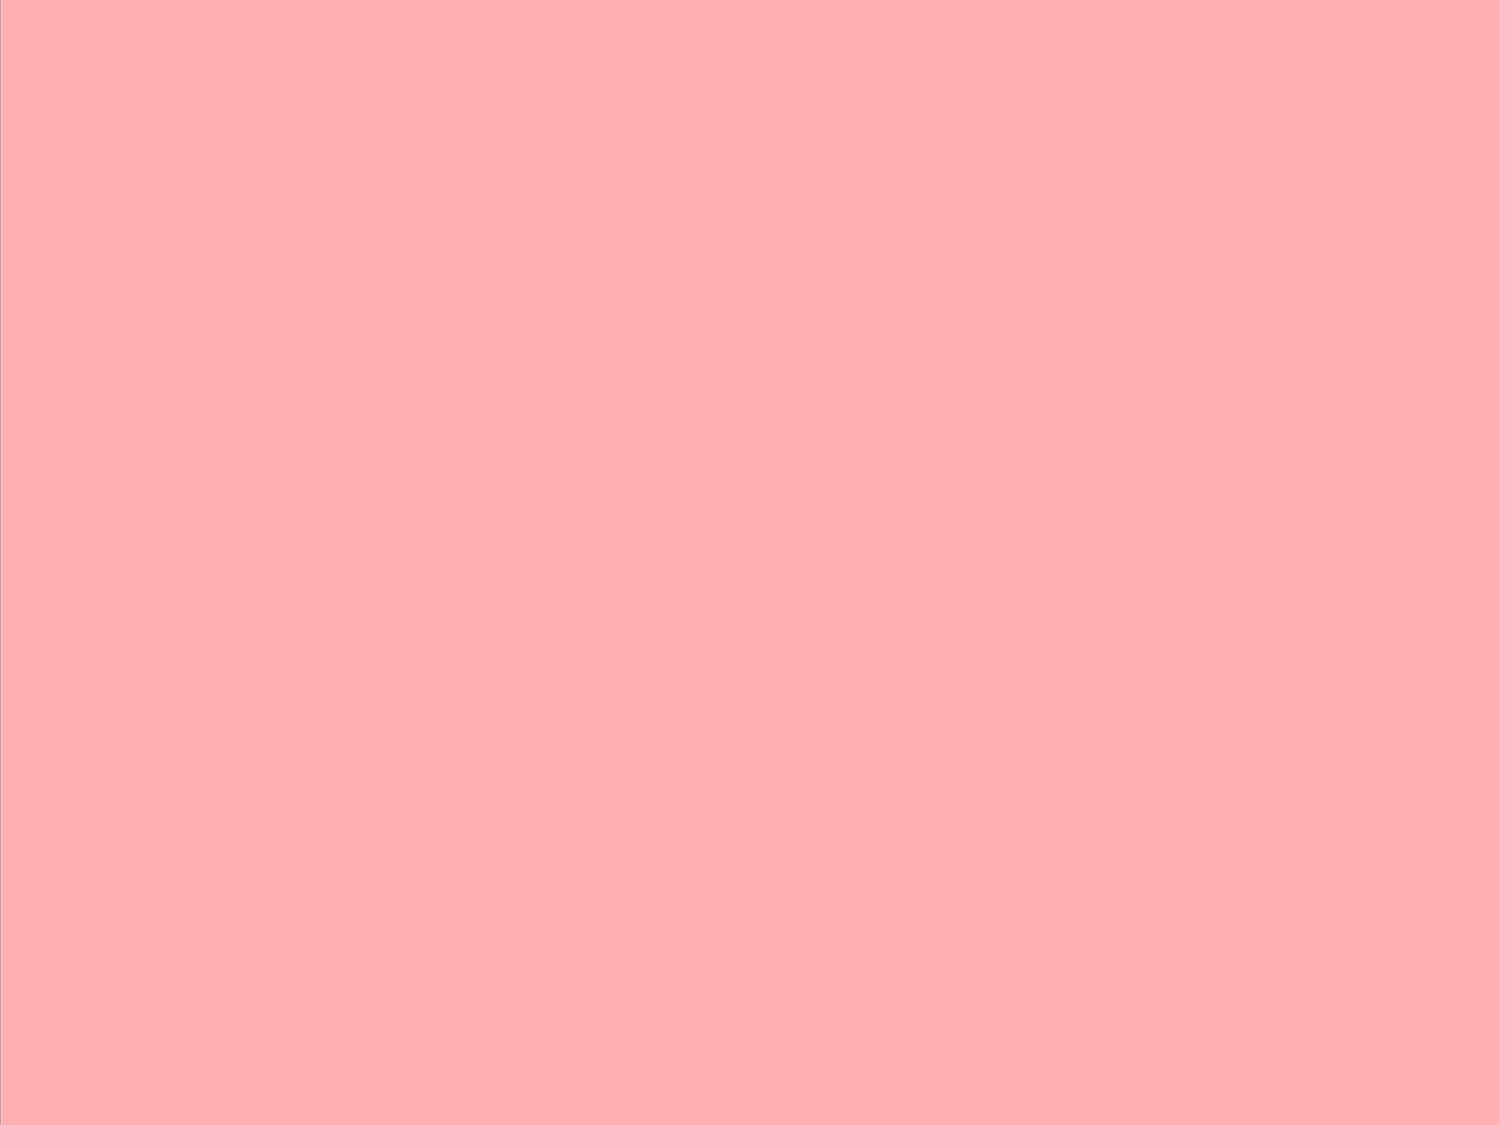 Plain Light Pink Wallpaper Light pink backg 1500x1125